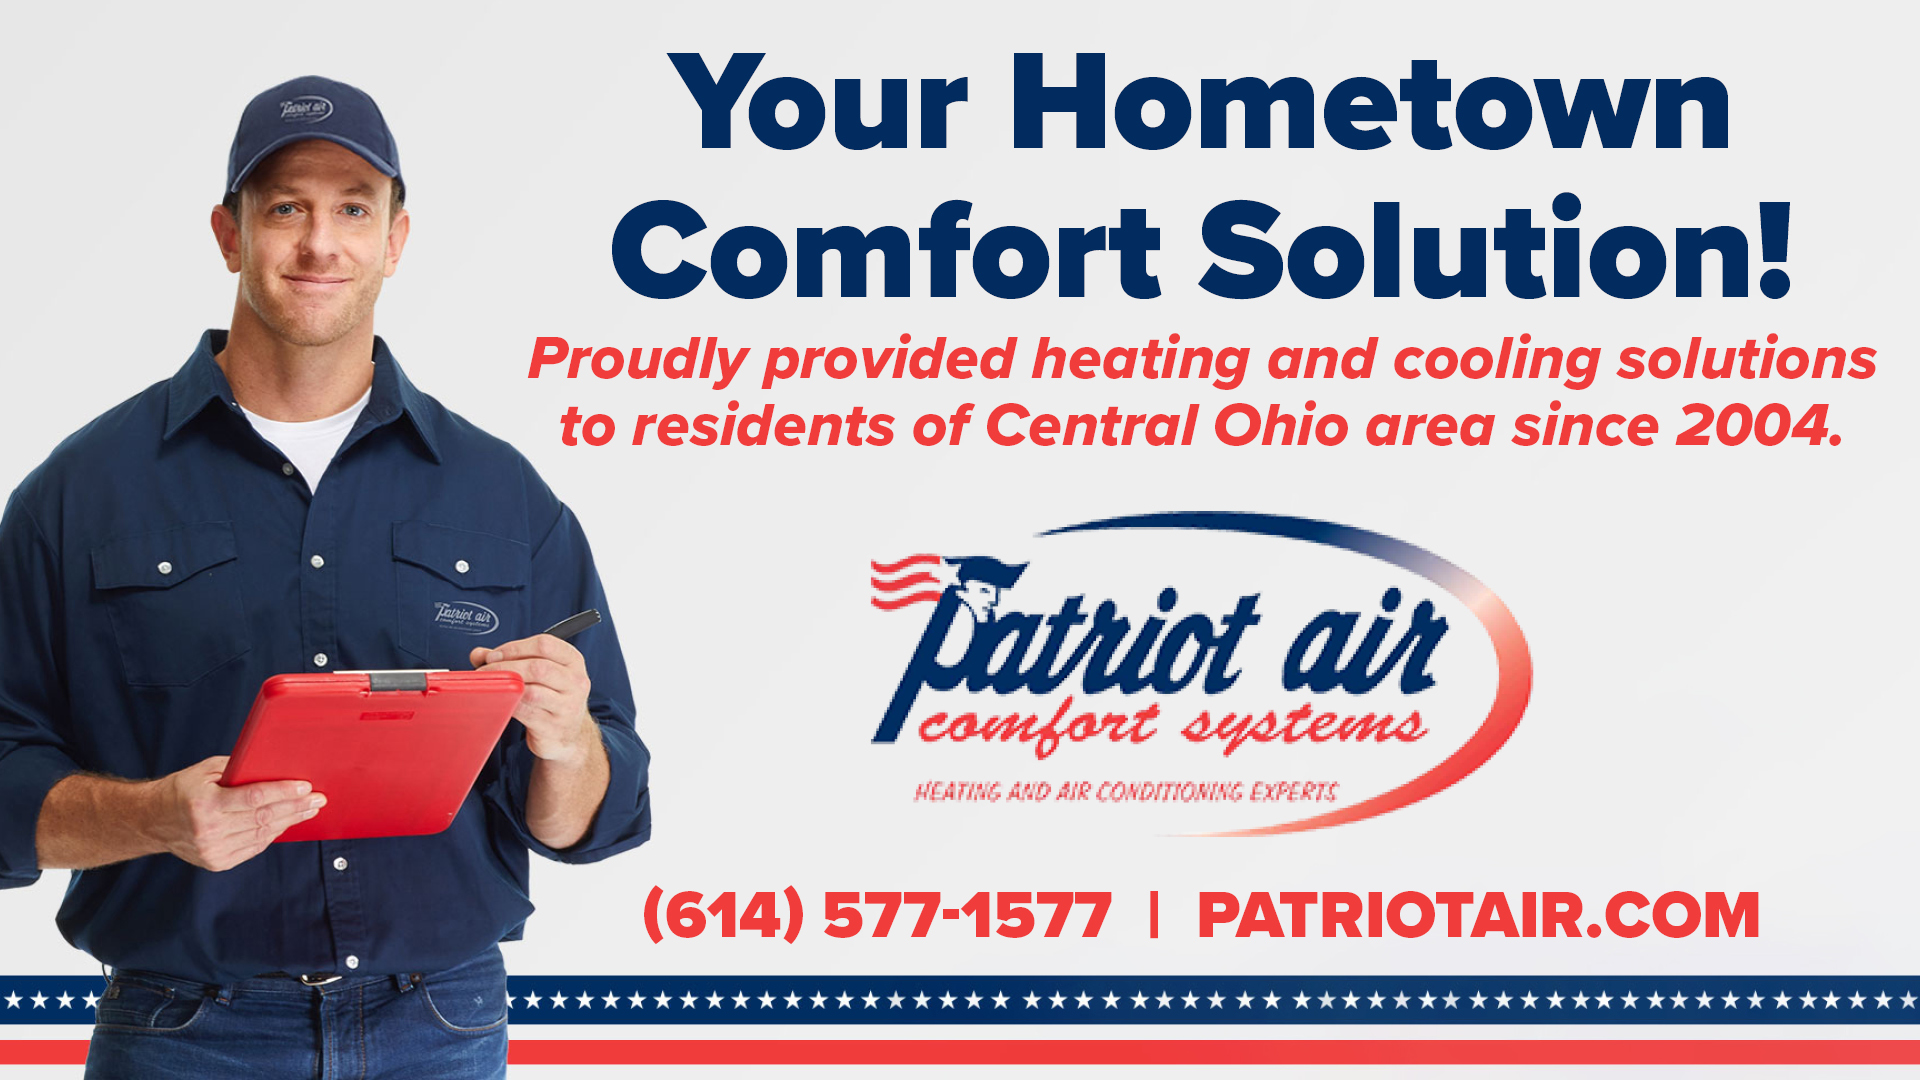 Hvac Companies Columbus Ohio Furnace Repair Patriot Air